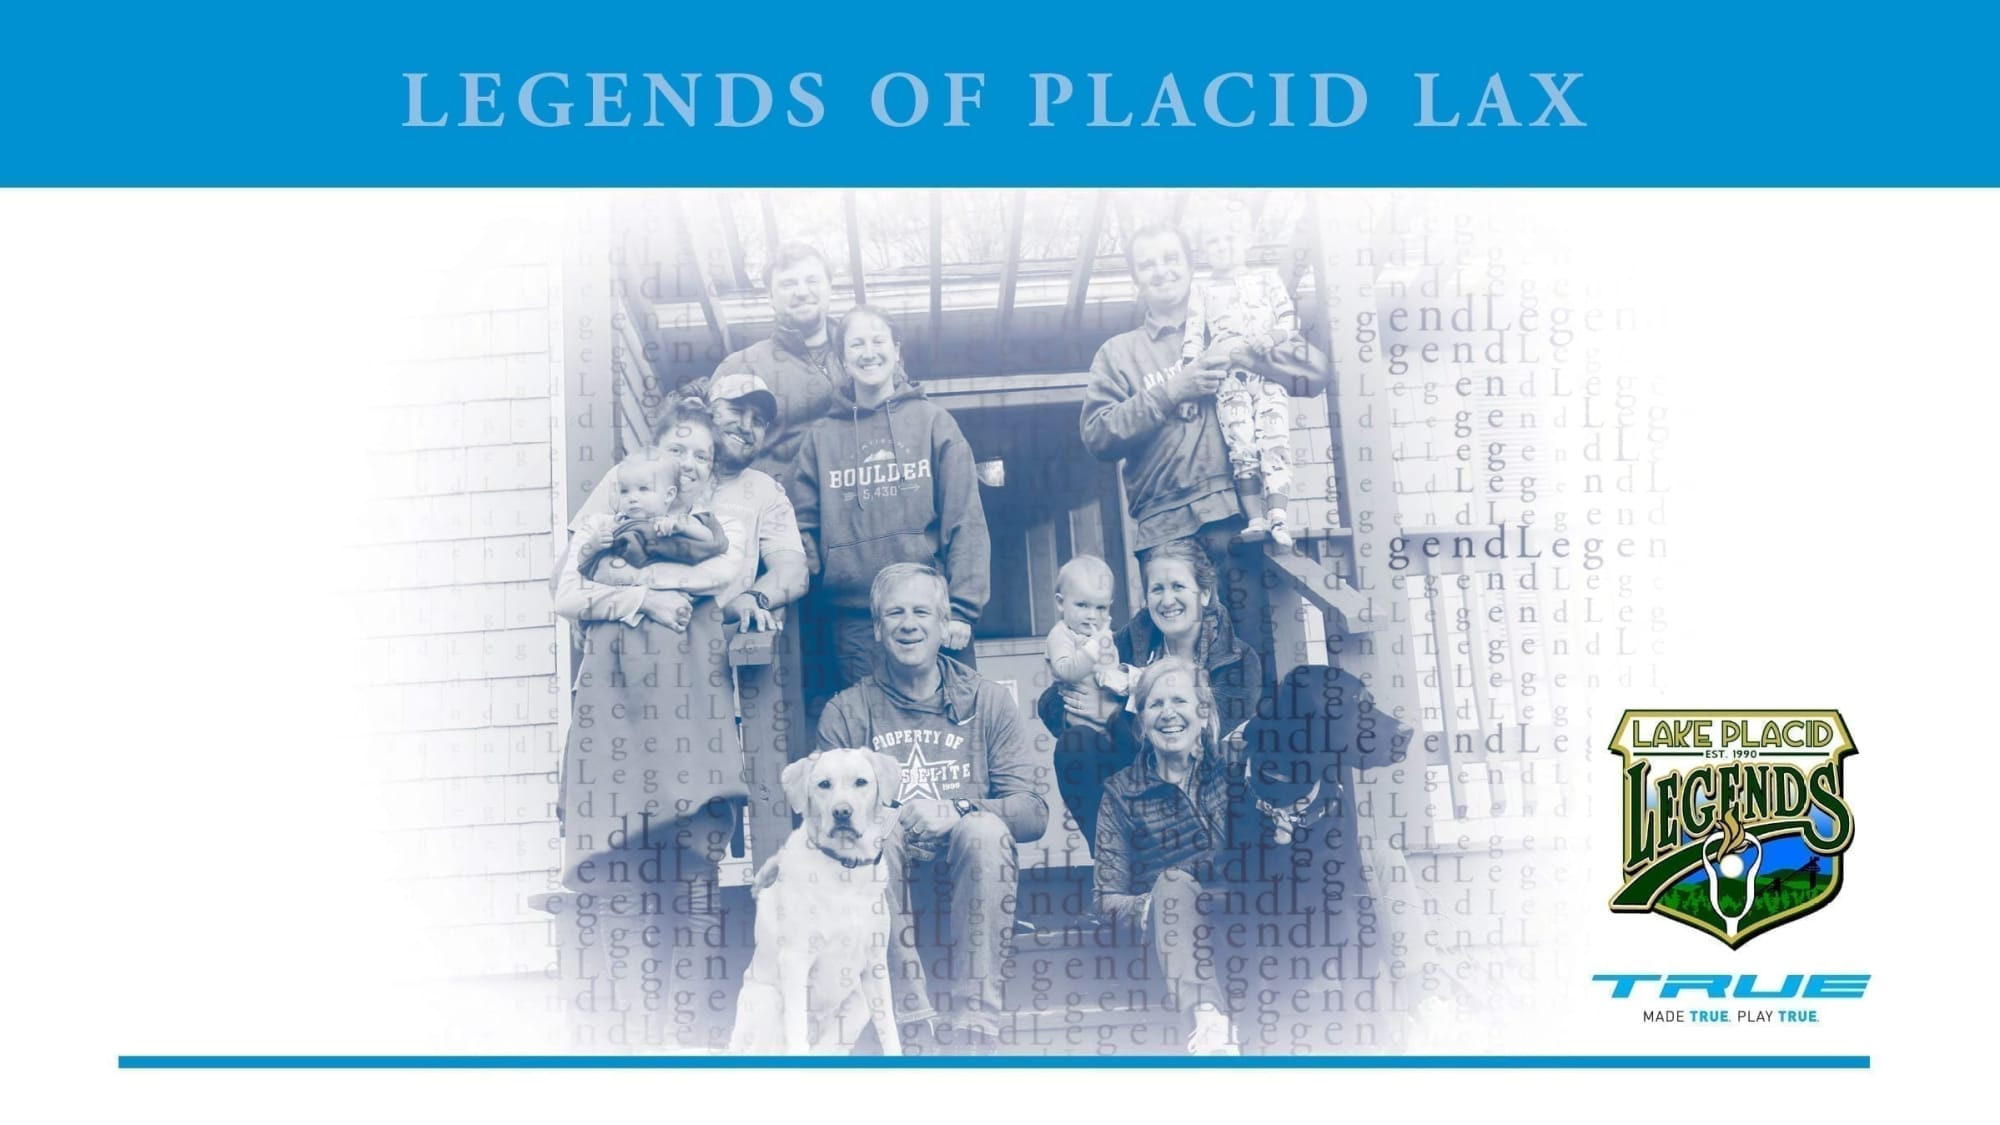 placid legends frank family summit lax ventures lax all stars grow the game